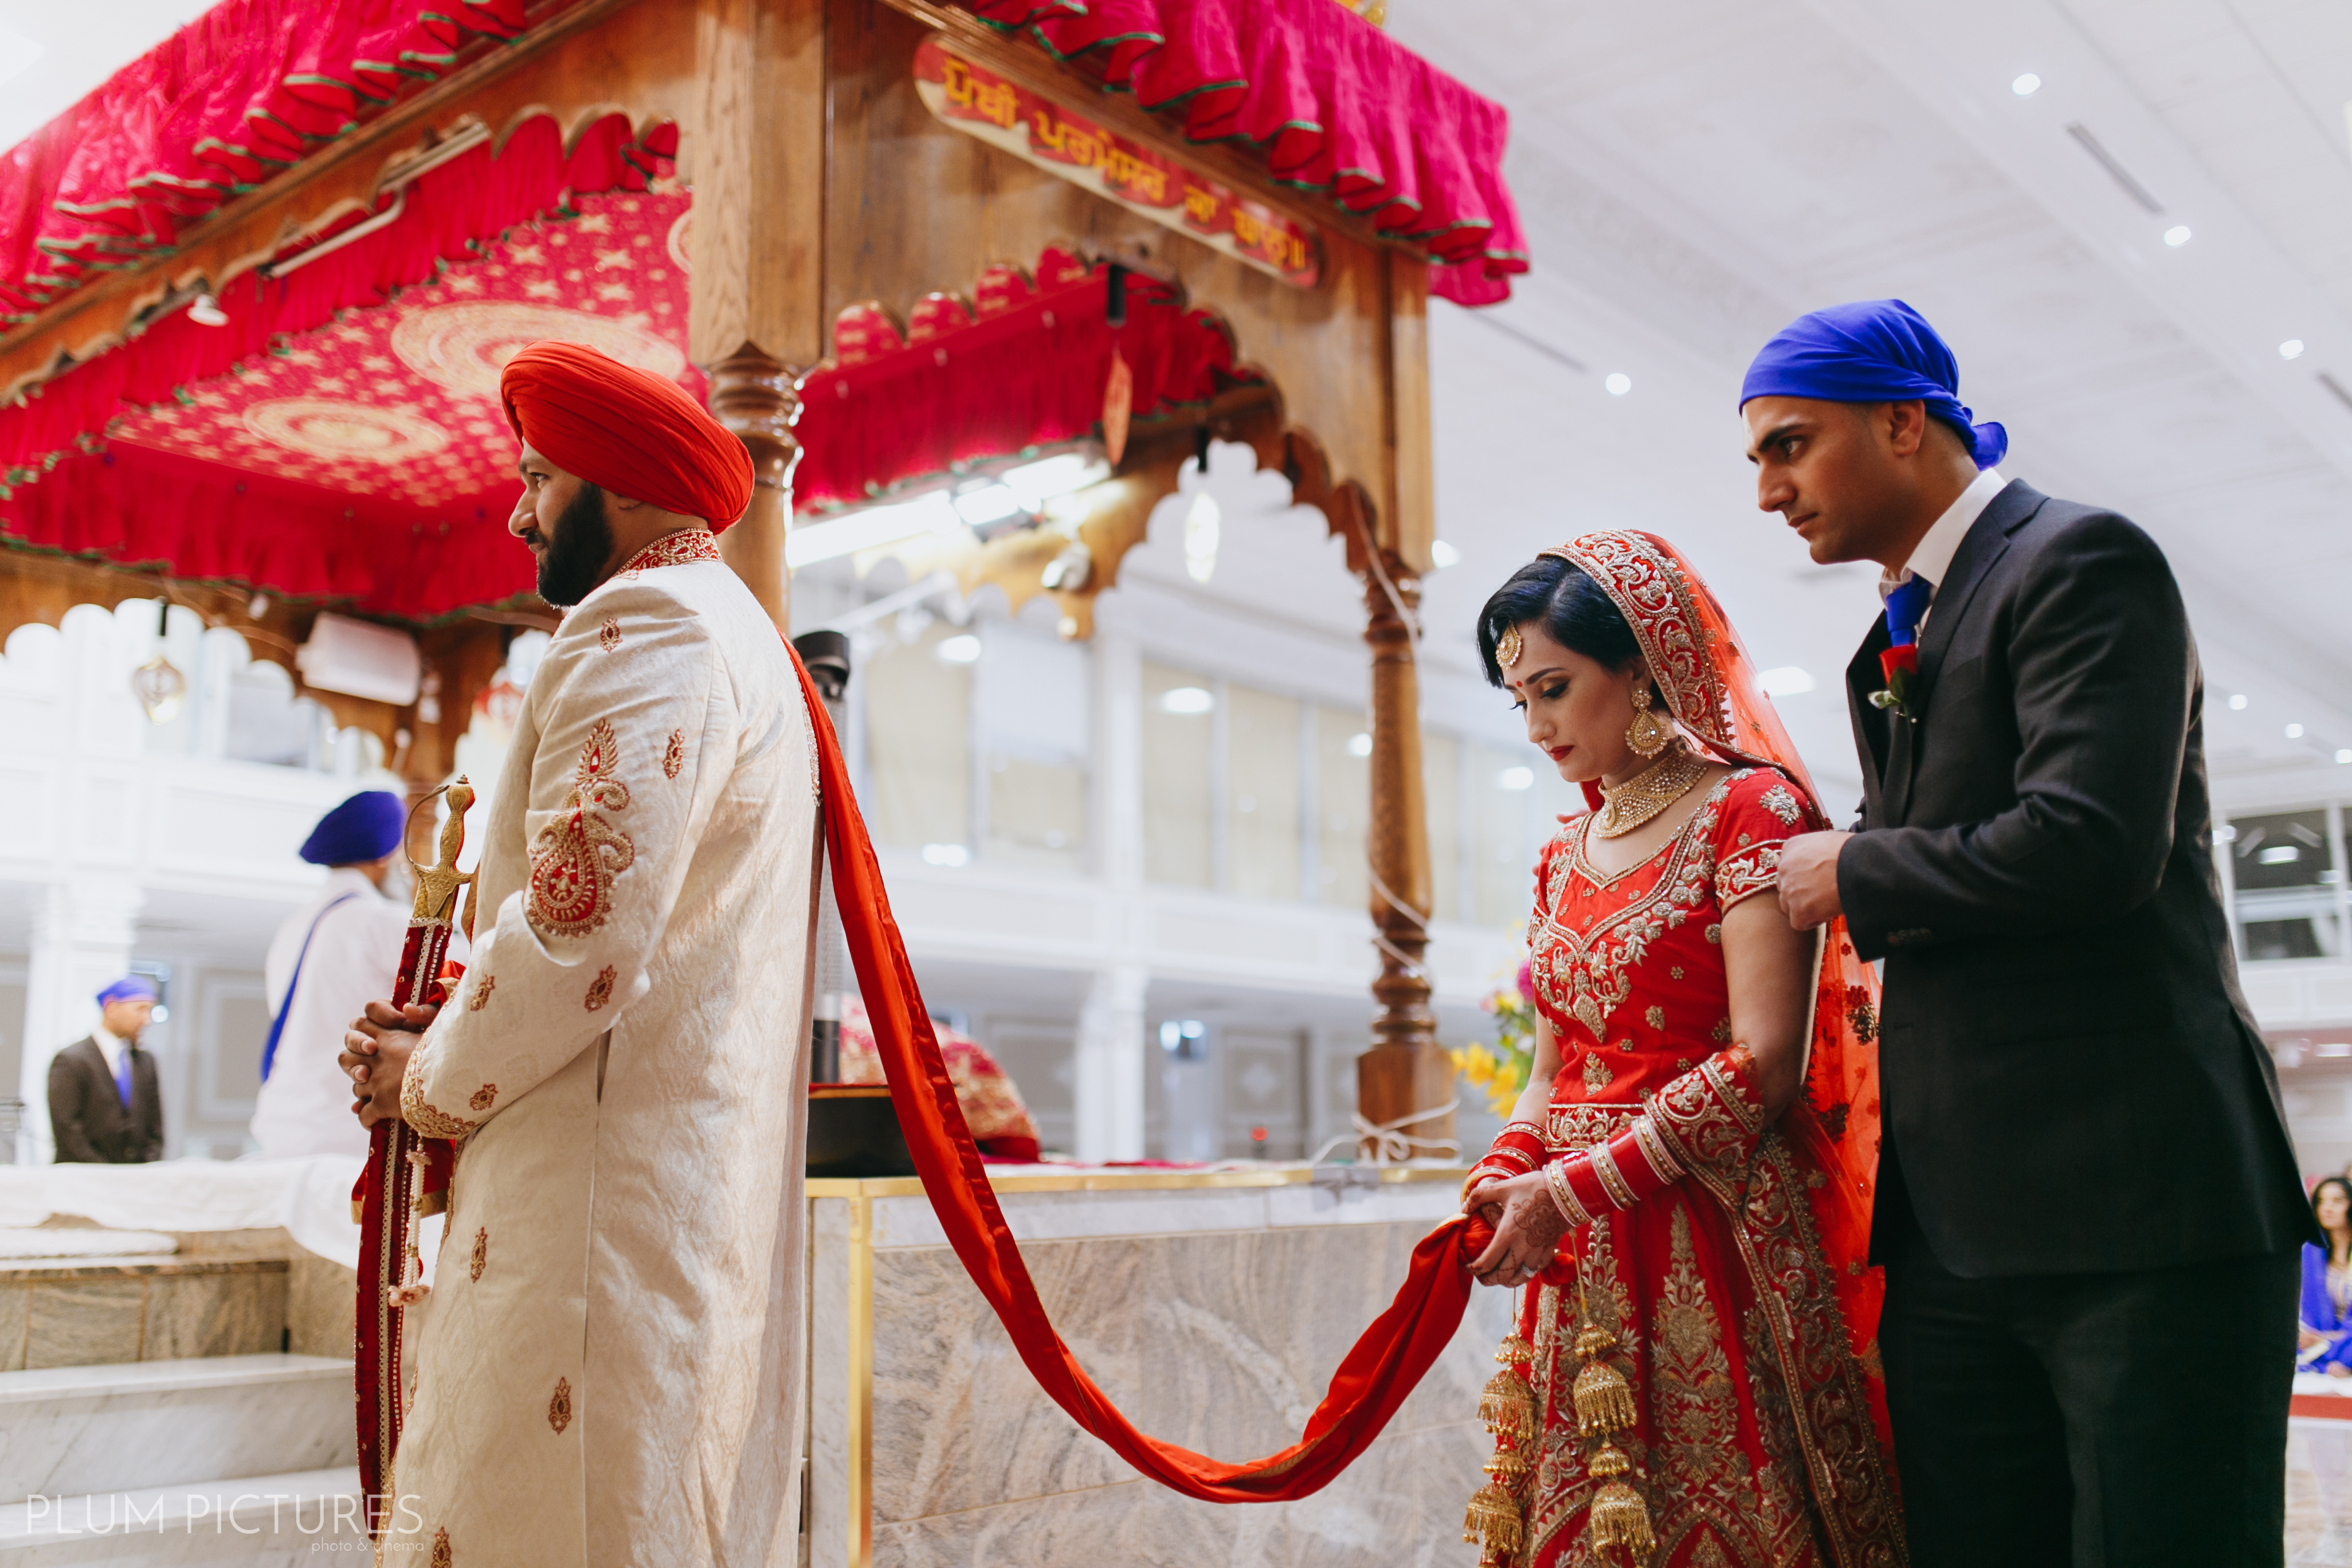 Jessi + Pardeep [PLUM PICTURES]-48